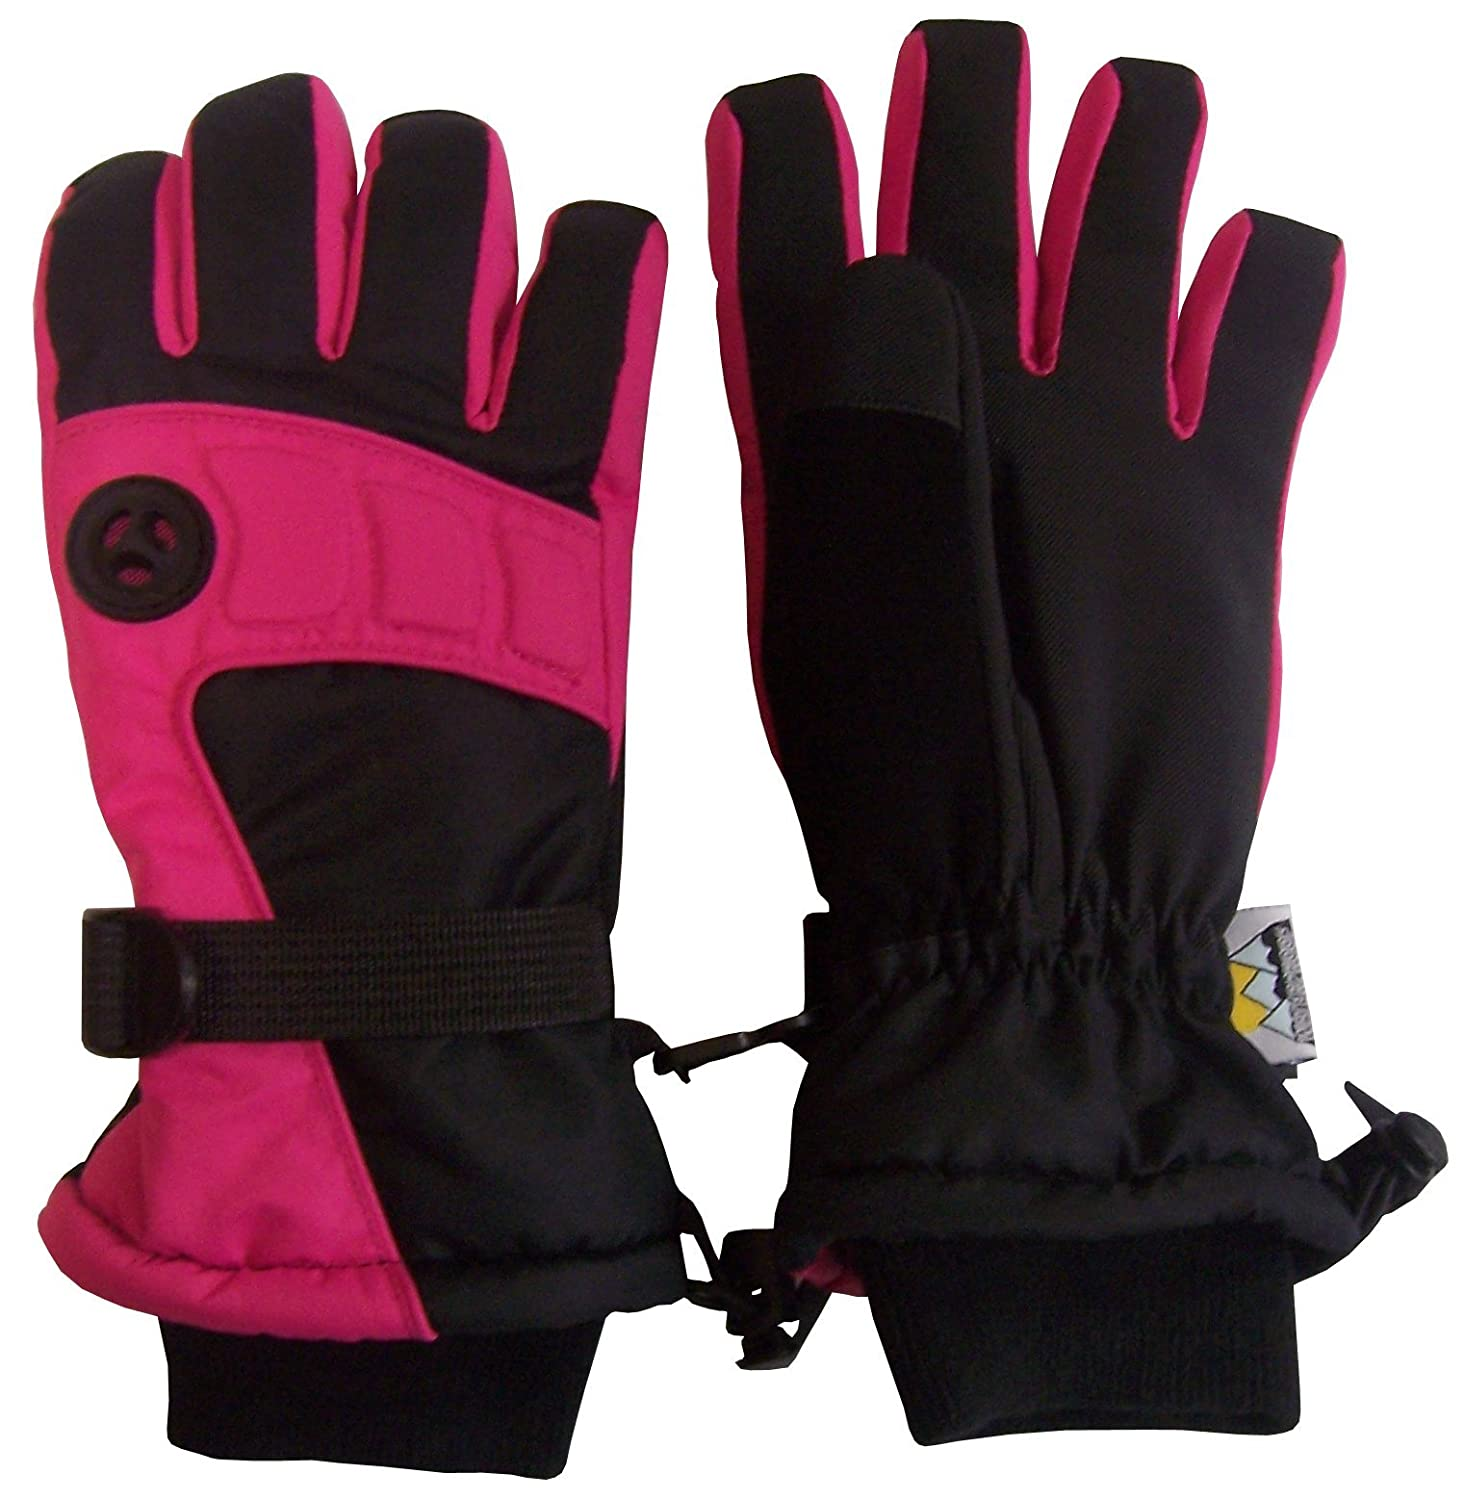 N'Ice Caps Kids Extreme Cold Weather Premier Colorblock Ski Glove with Air Hole 4929-FUBK-89